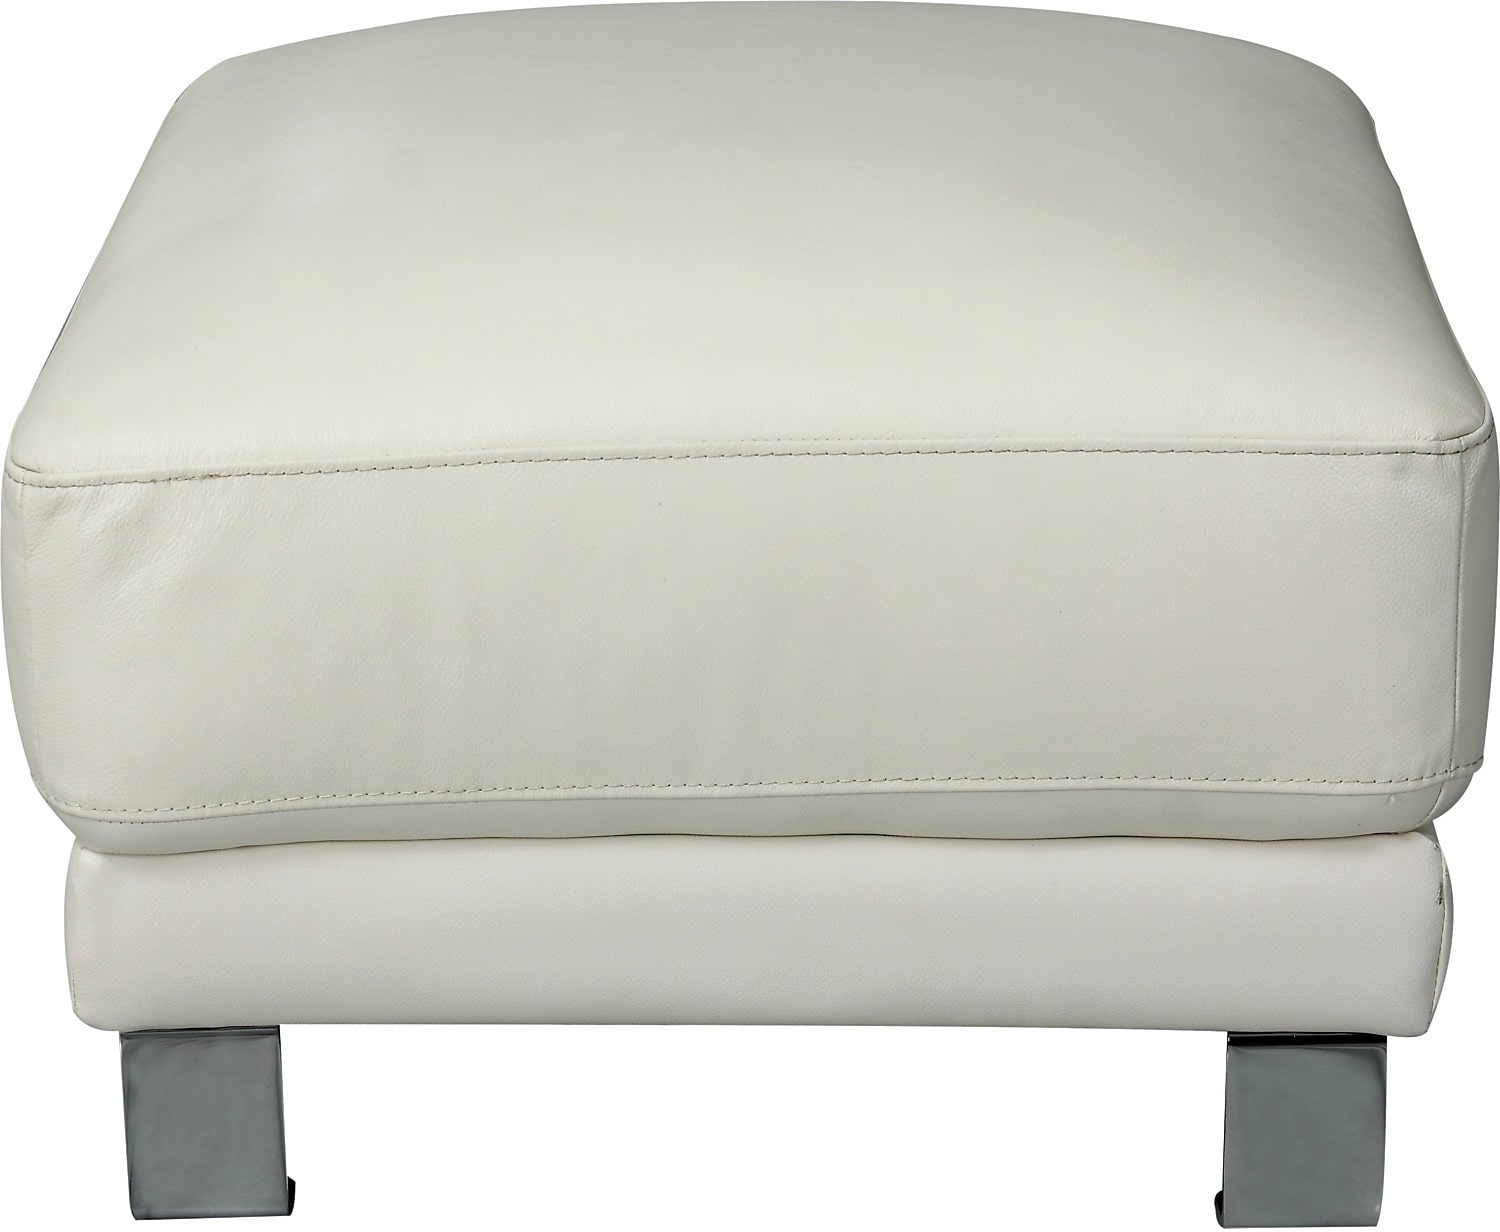 Nico Genuine Leather Ottoman - Ivory